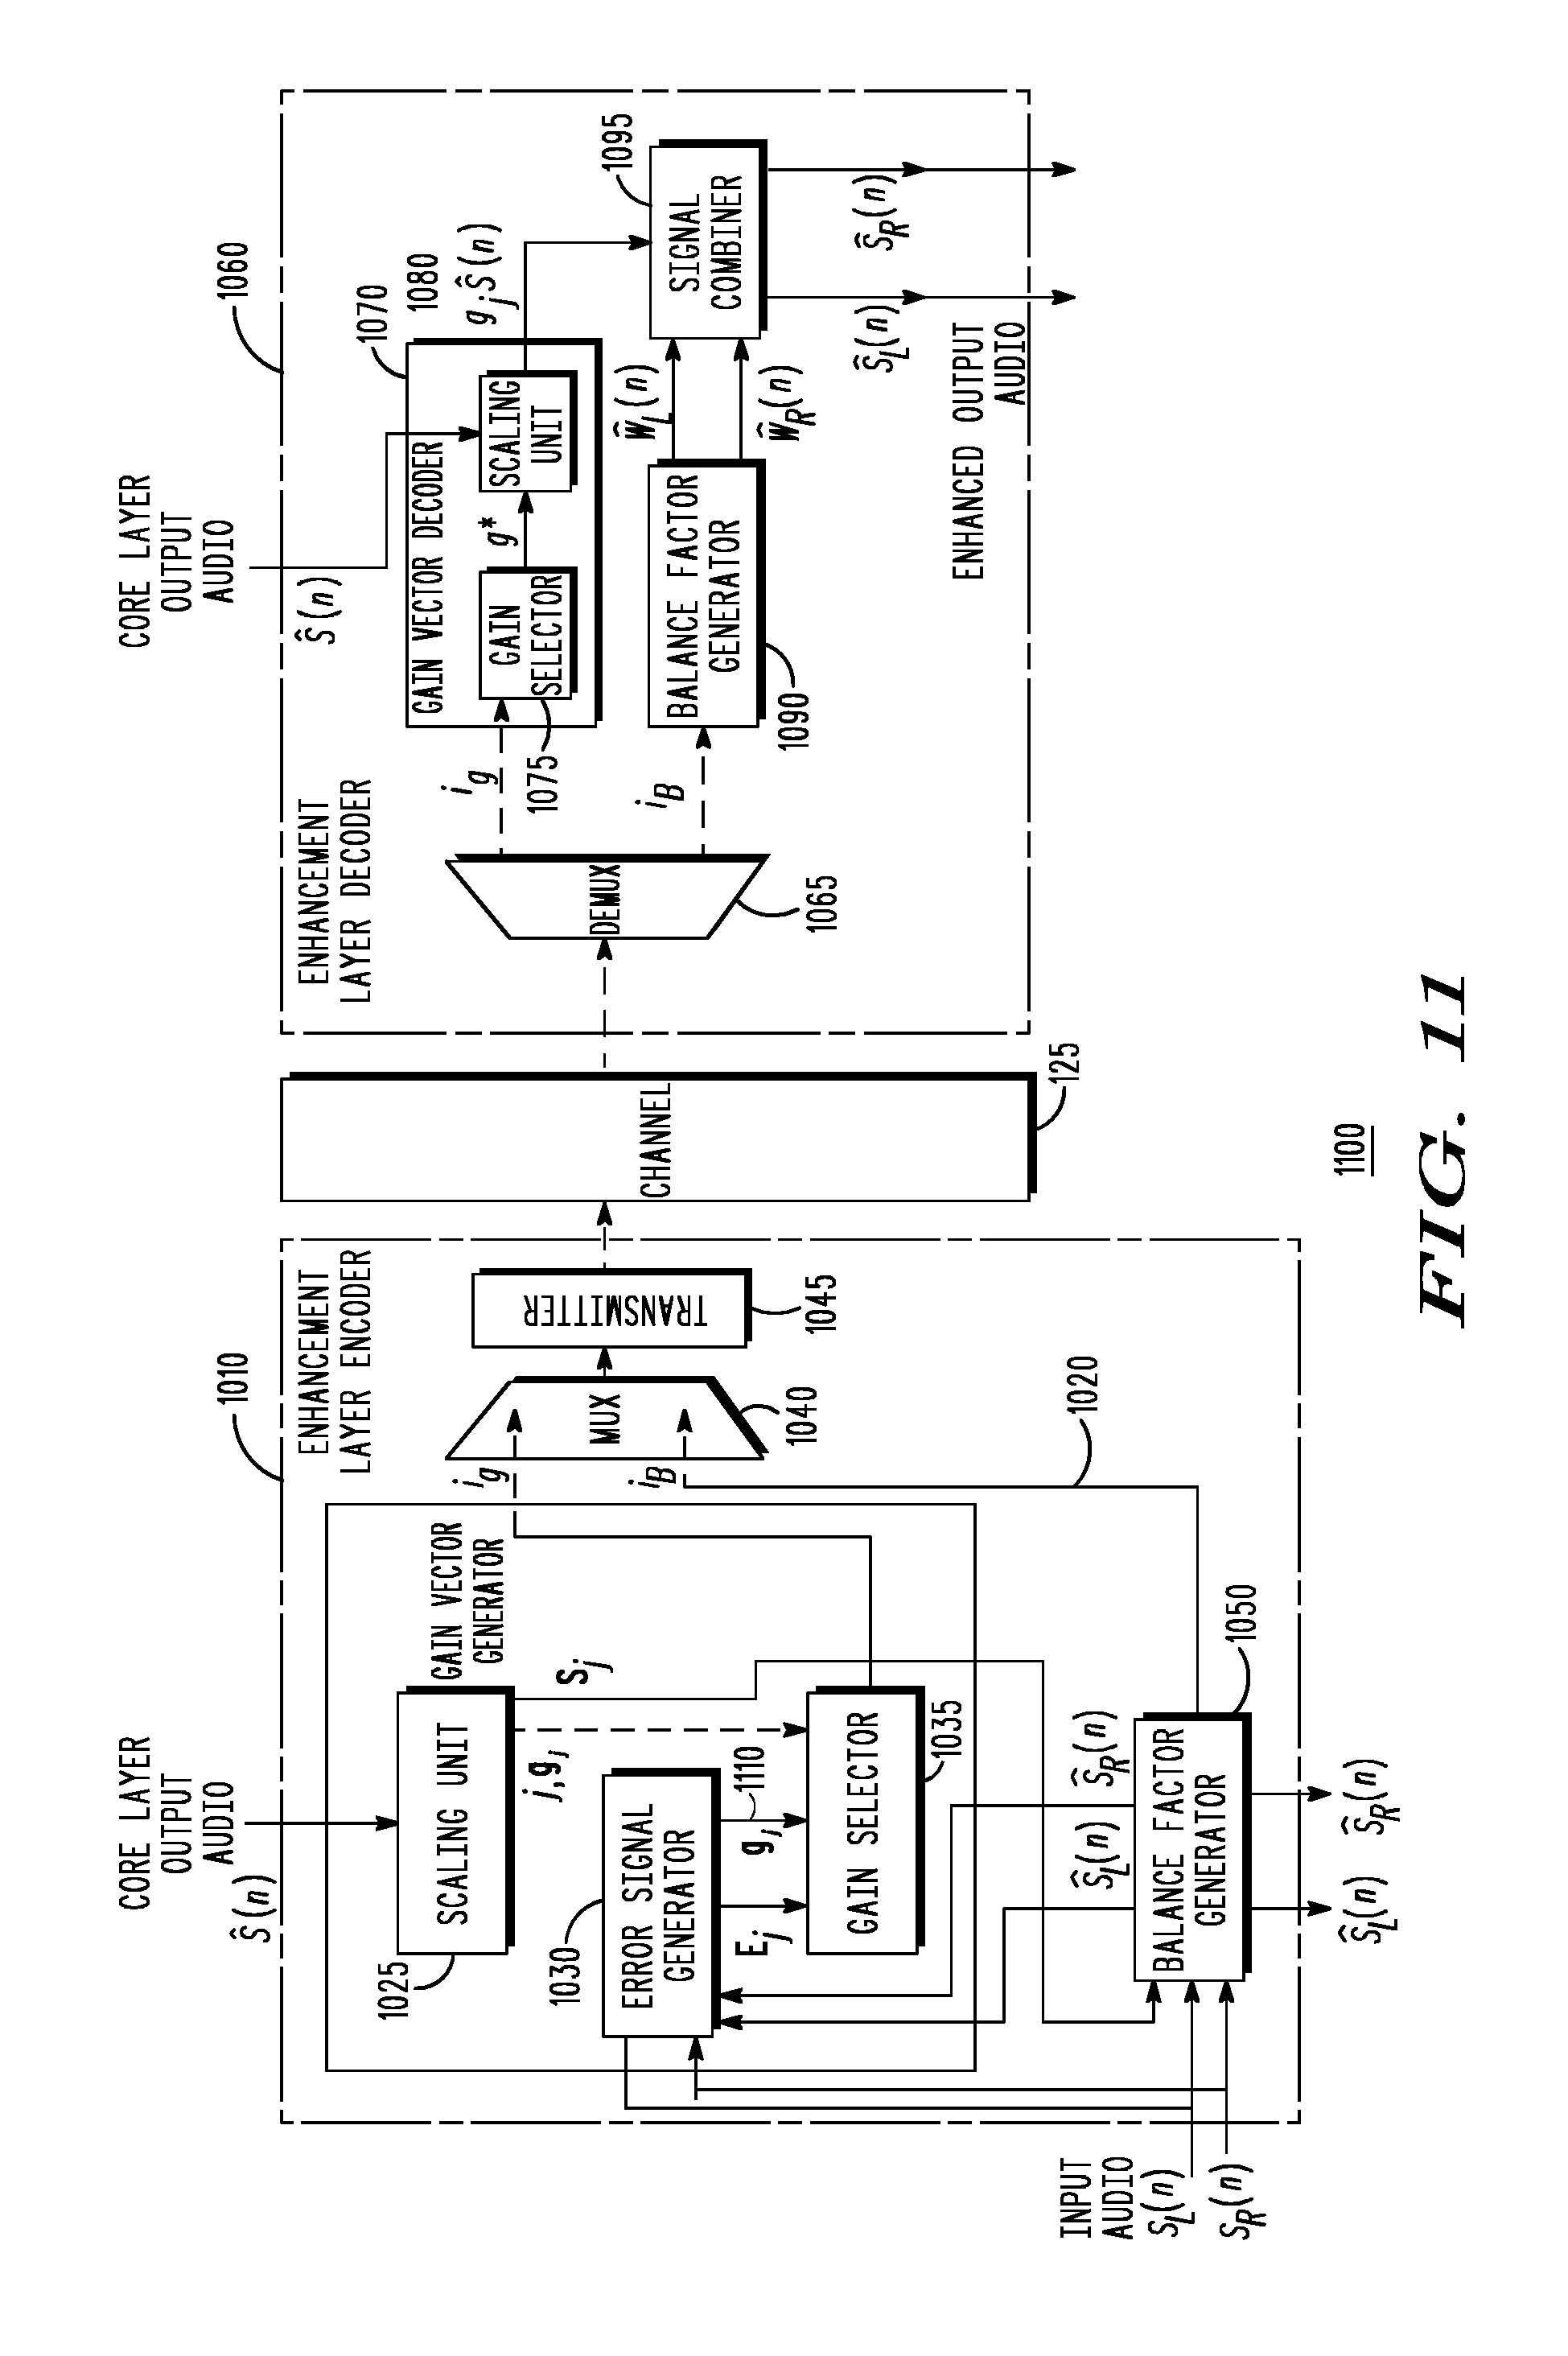 Patent Us8200496 Audio Signal Decoder And Method For Producing A Function Generator Circuit Full Description Drawing